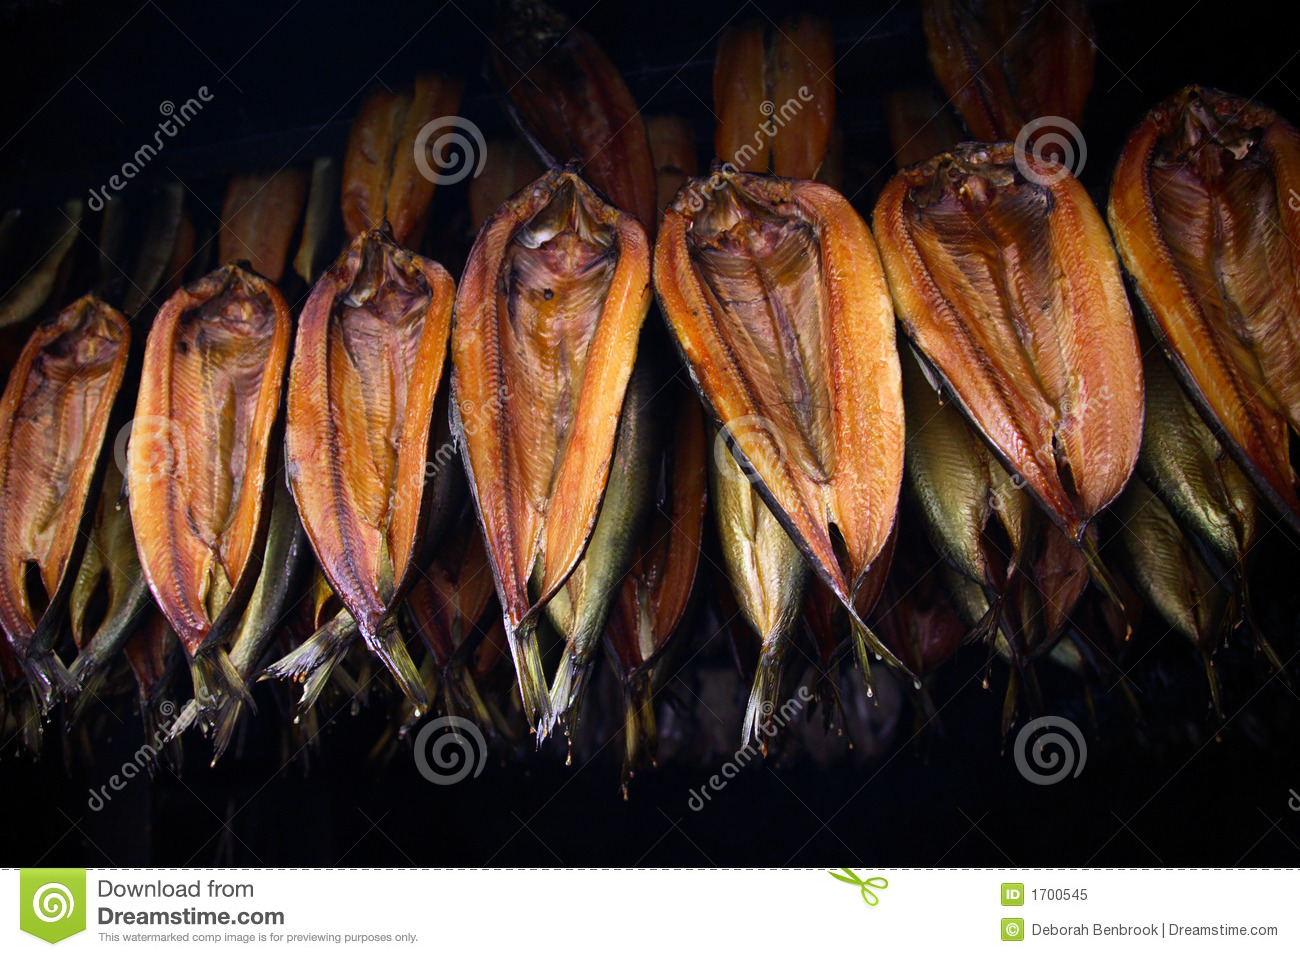 Smoked kippers royalty free stock photo image 1700545 for Fish dream meaning pregnancy